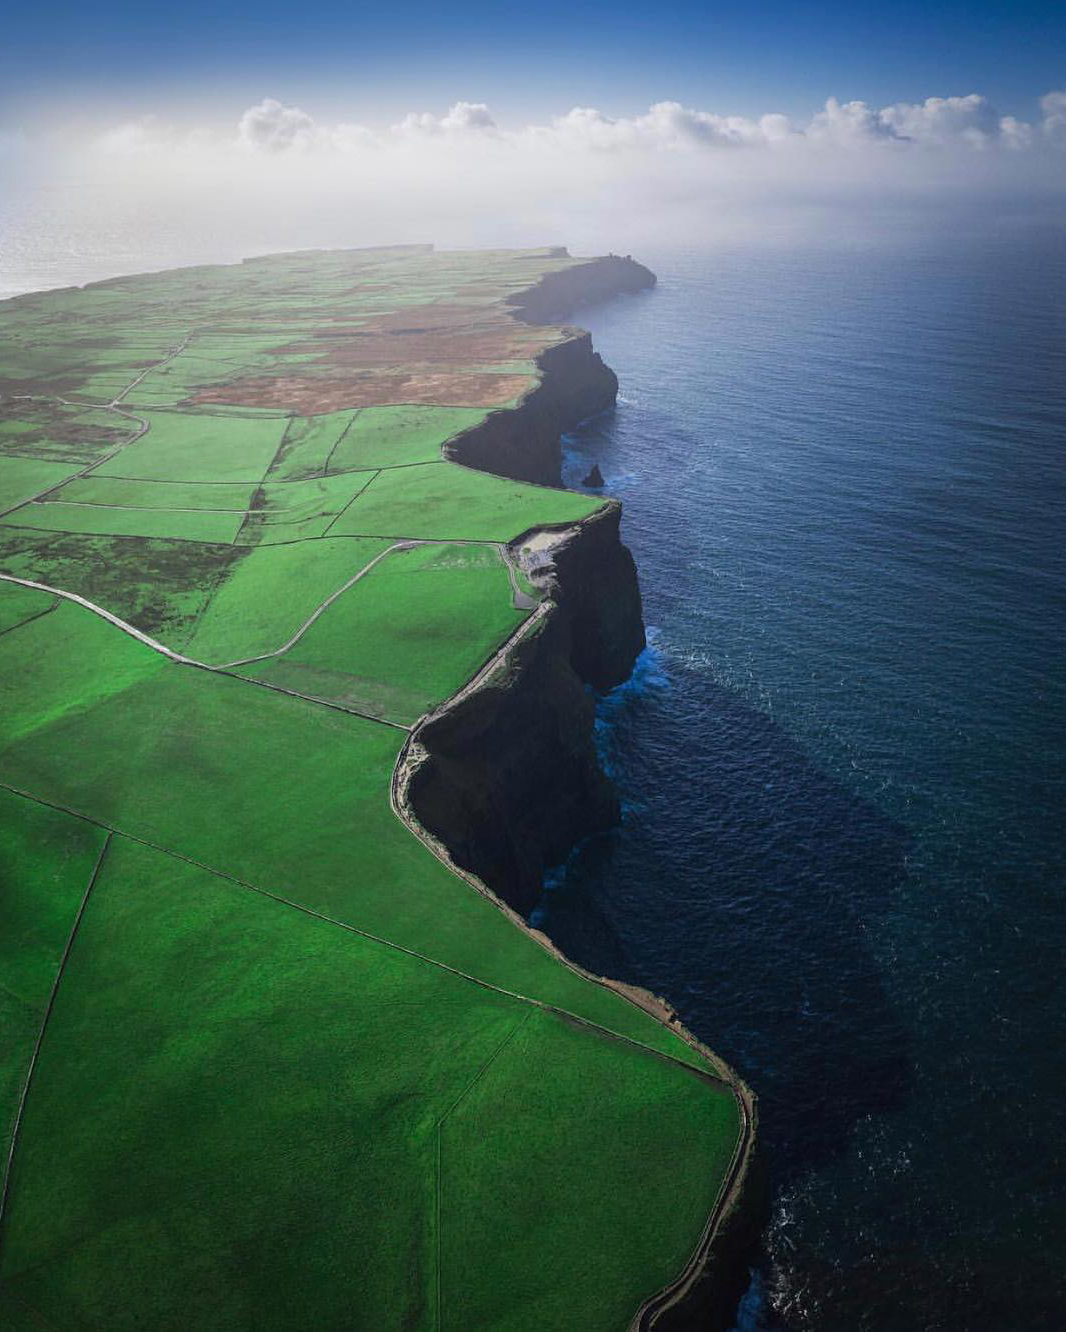 "Happy St. Patrick's Day! Here's an incredible aerial view of the Cliffs of Moher, which stretch for about 8.7 miles (14km) along the Atlantic Ocean in County Clare, Ireland. The cliffs range in height from 390 feet (120m) to 702 feet (214m) and are among the most visited tourist sites in Ireland, with about 1.5 million visitors a year.  52°58'18.3""N, 9°25'34.8""W  Source imagery: Max Malloy Photography"